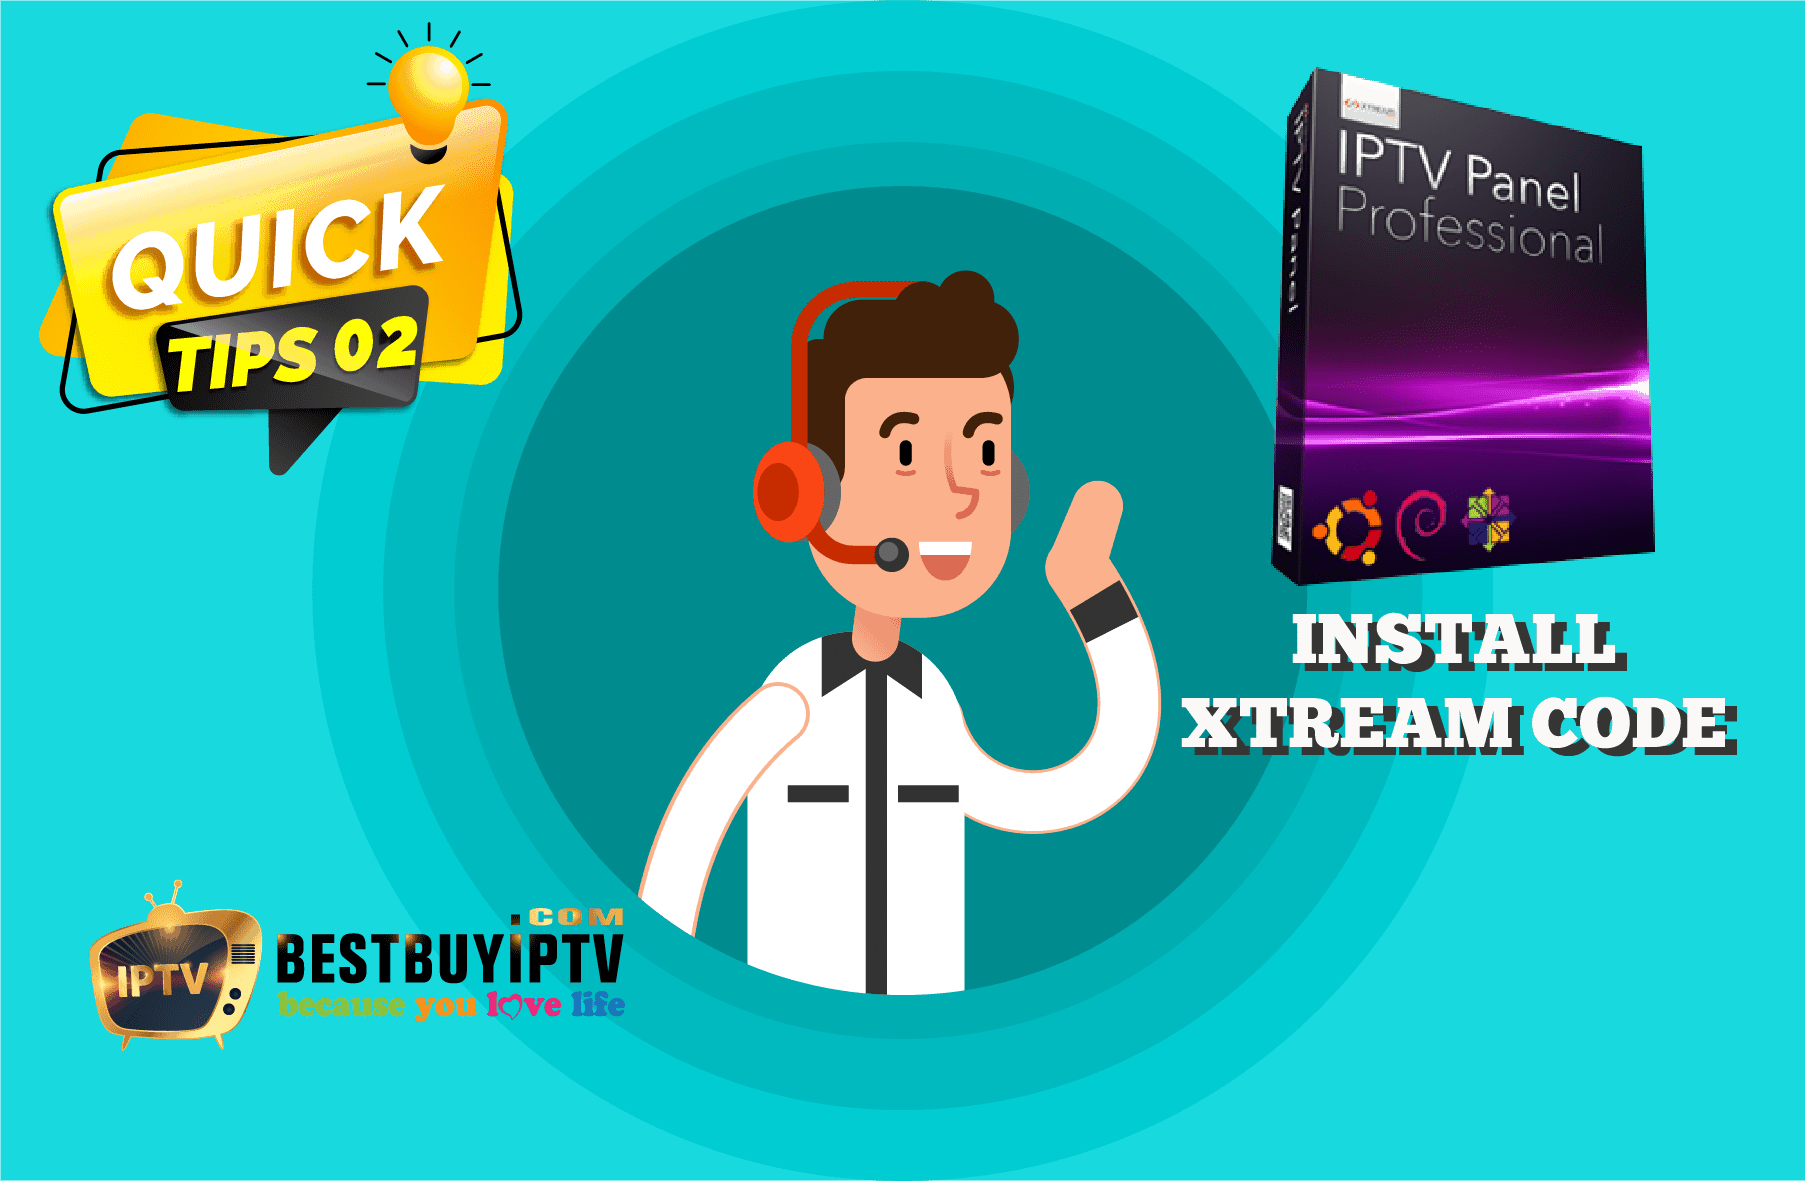 Install xtream codes - IPTV Subcription | BestbuyIPTV